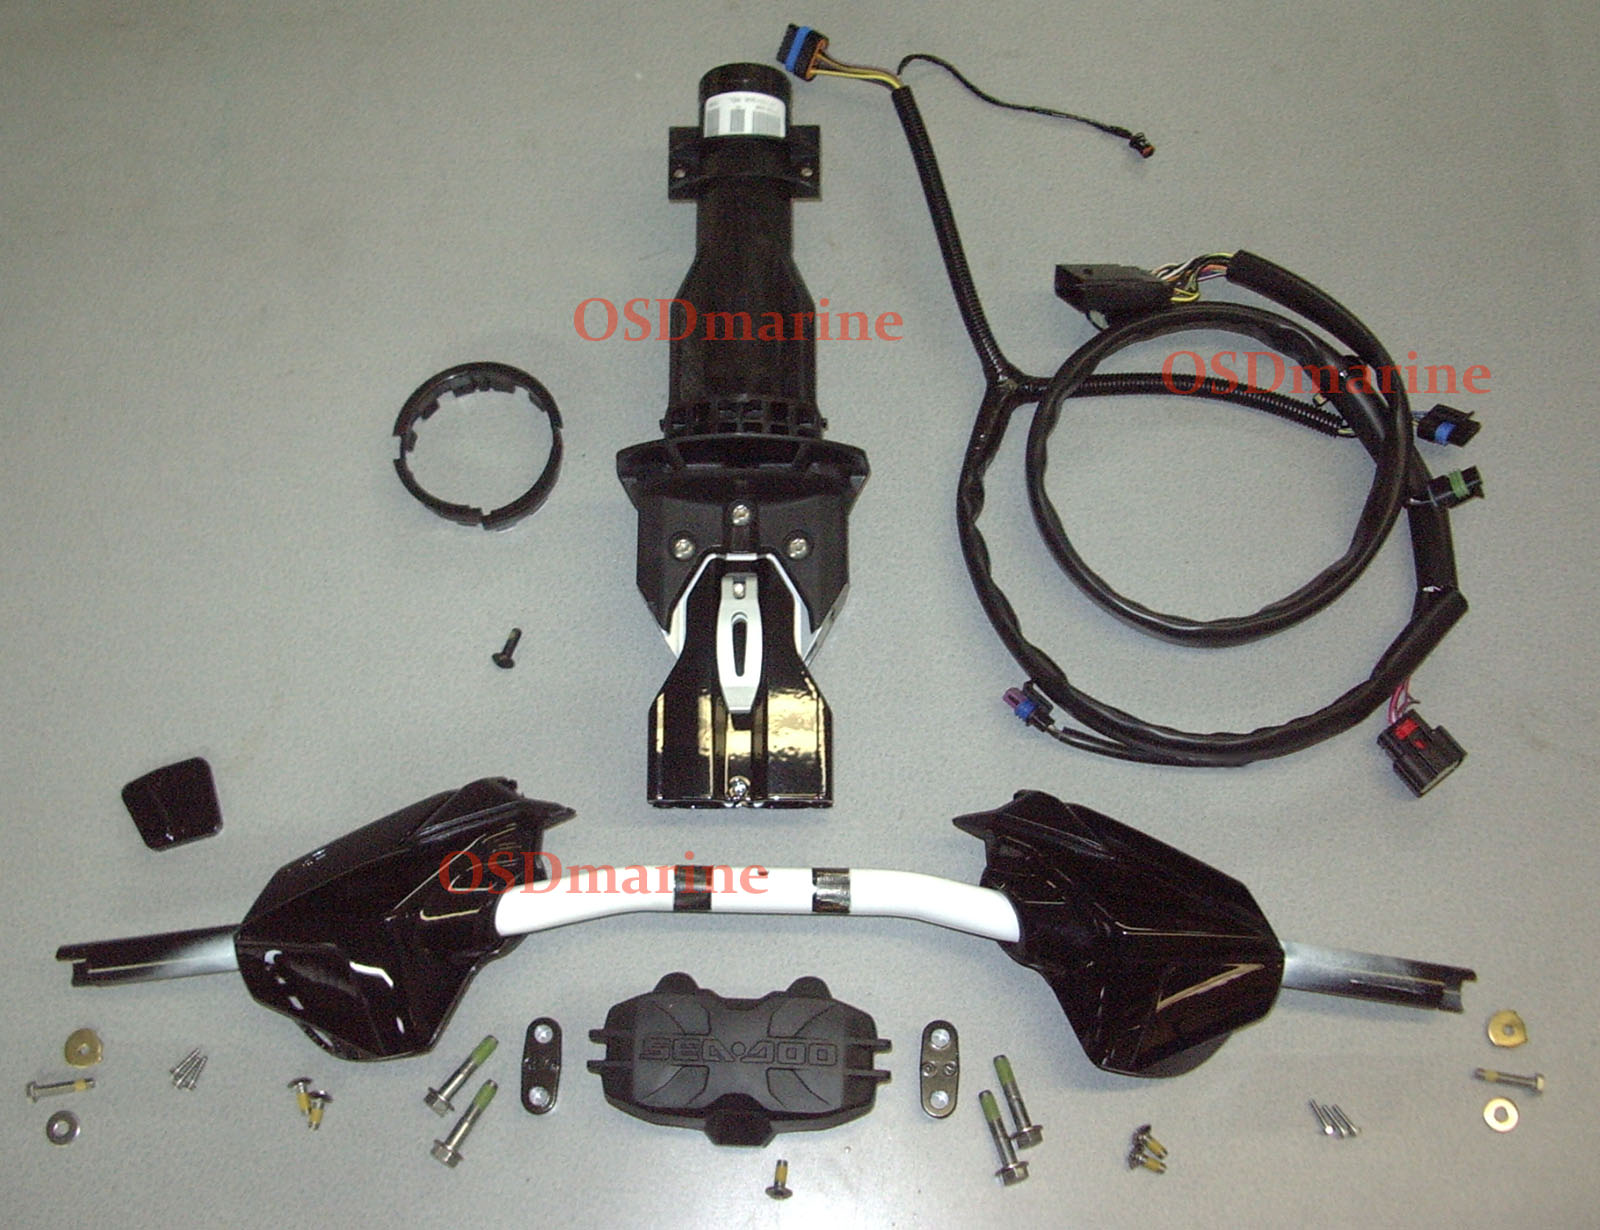 OSD Sea Doo SPARK Adjustable Riser Steering Kit (IBR Harness)